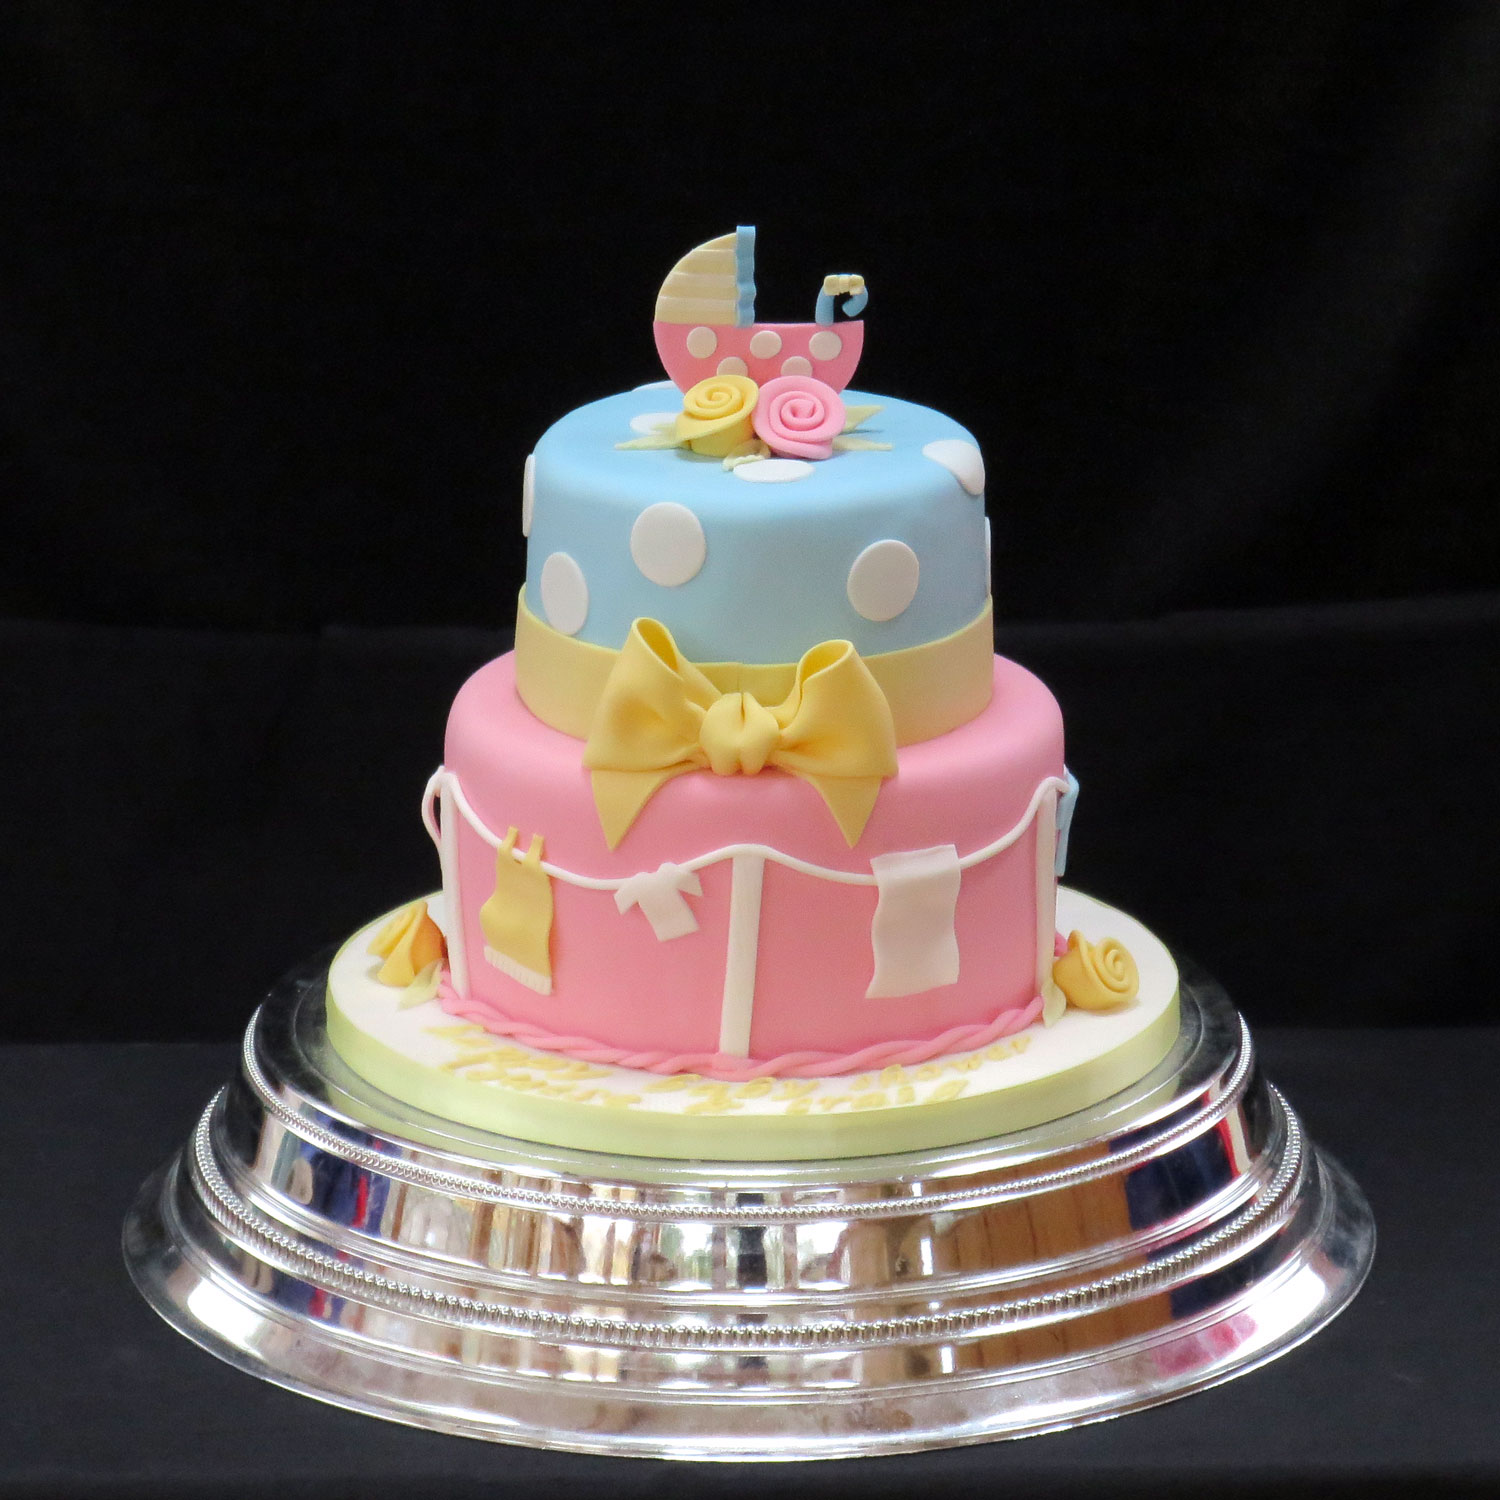 Christening Cakes Wedding Cakes Edinburgh Scotland